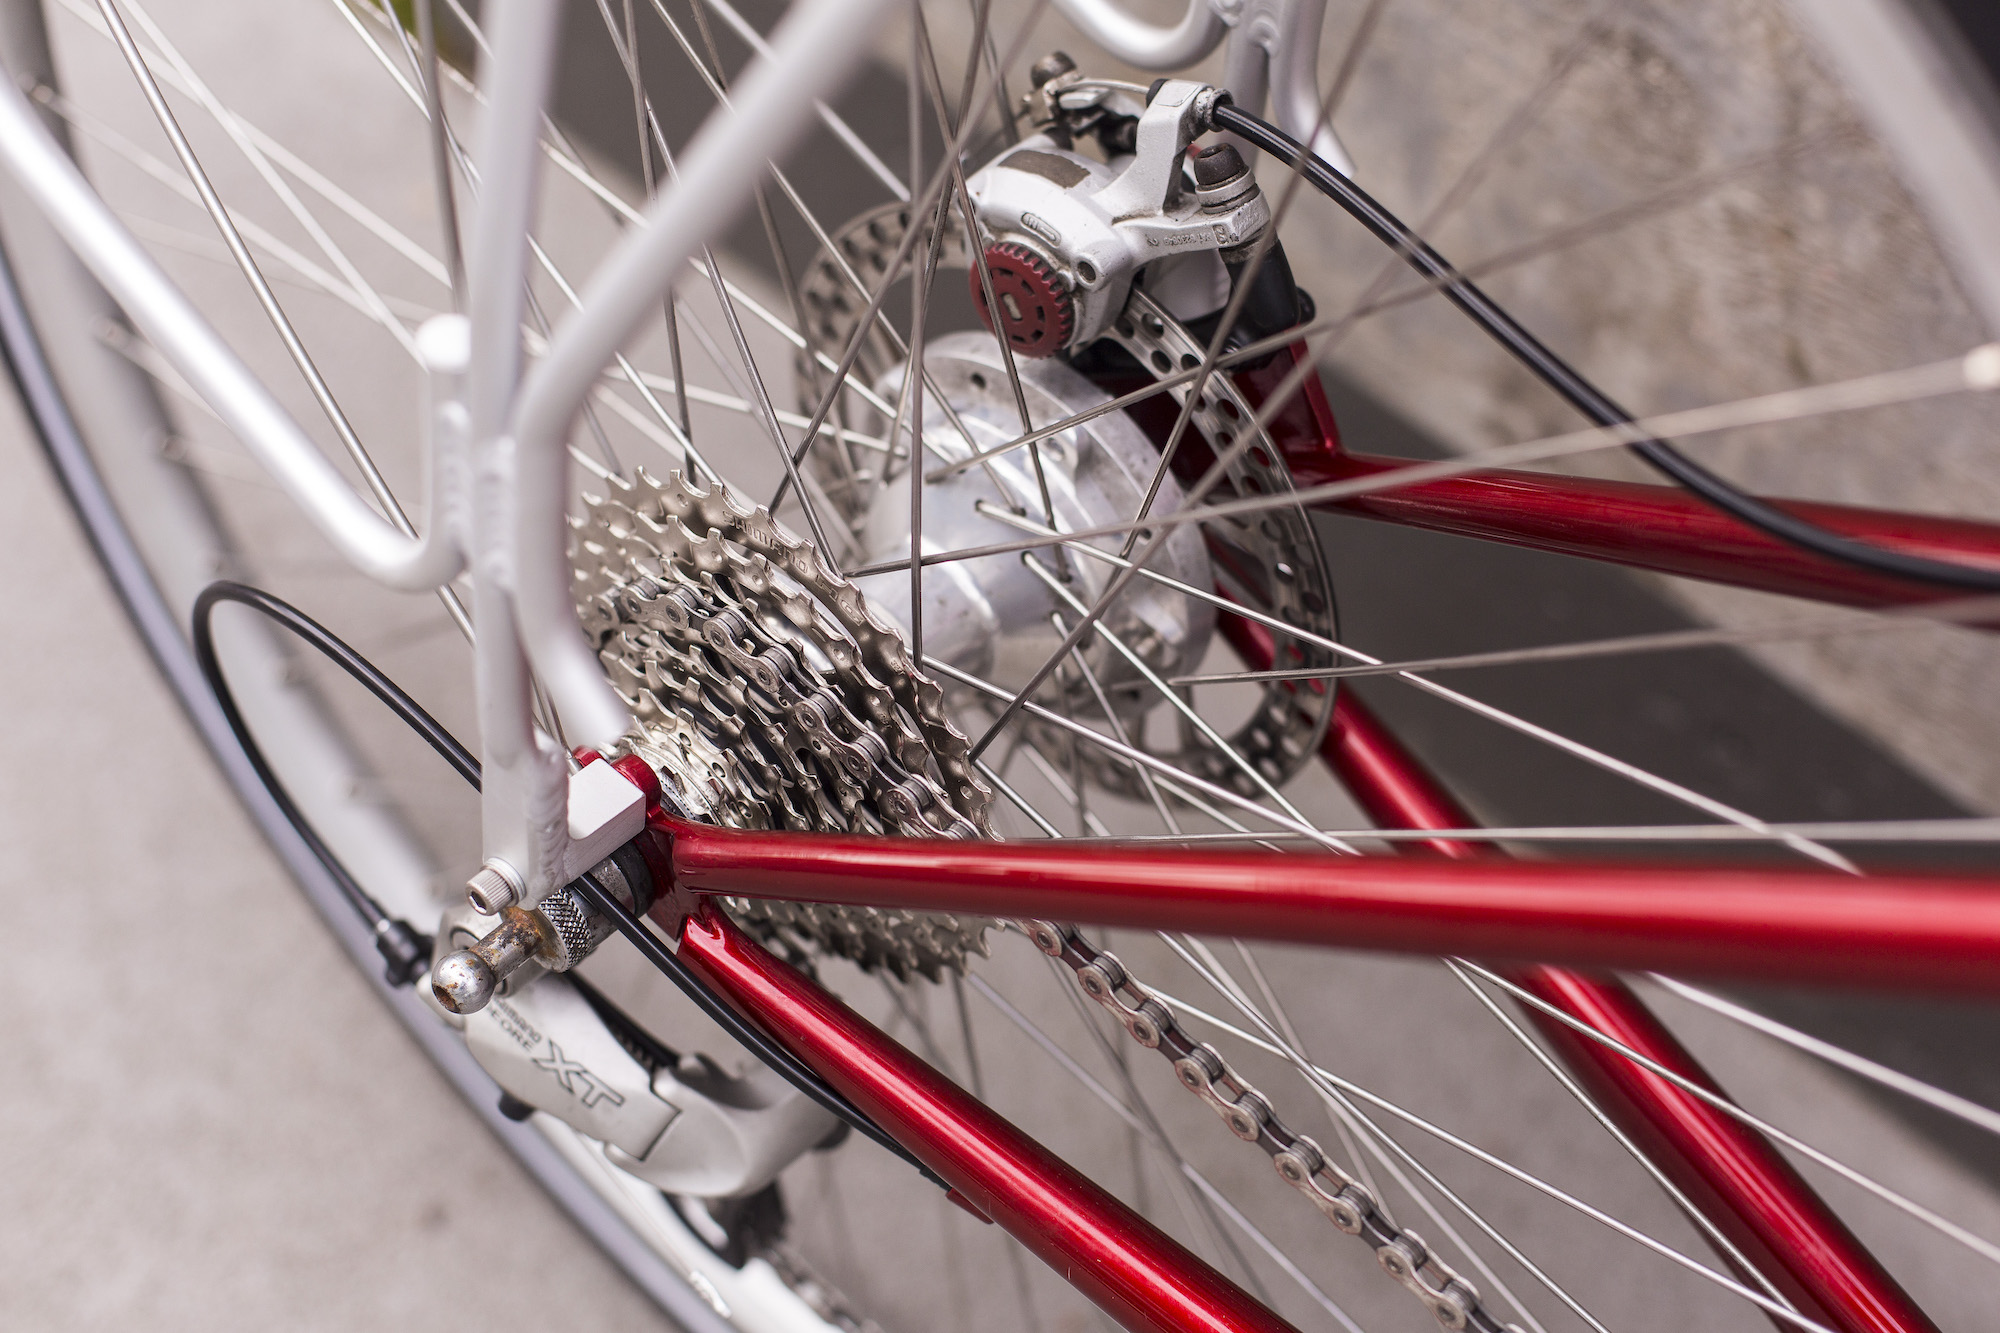 seabass-cycles-bikes-parts-instore-2-april-2019-roberts-tandem-candy-red-4370.jpg